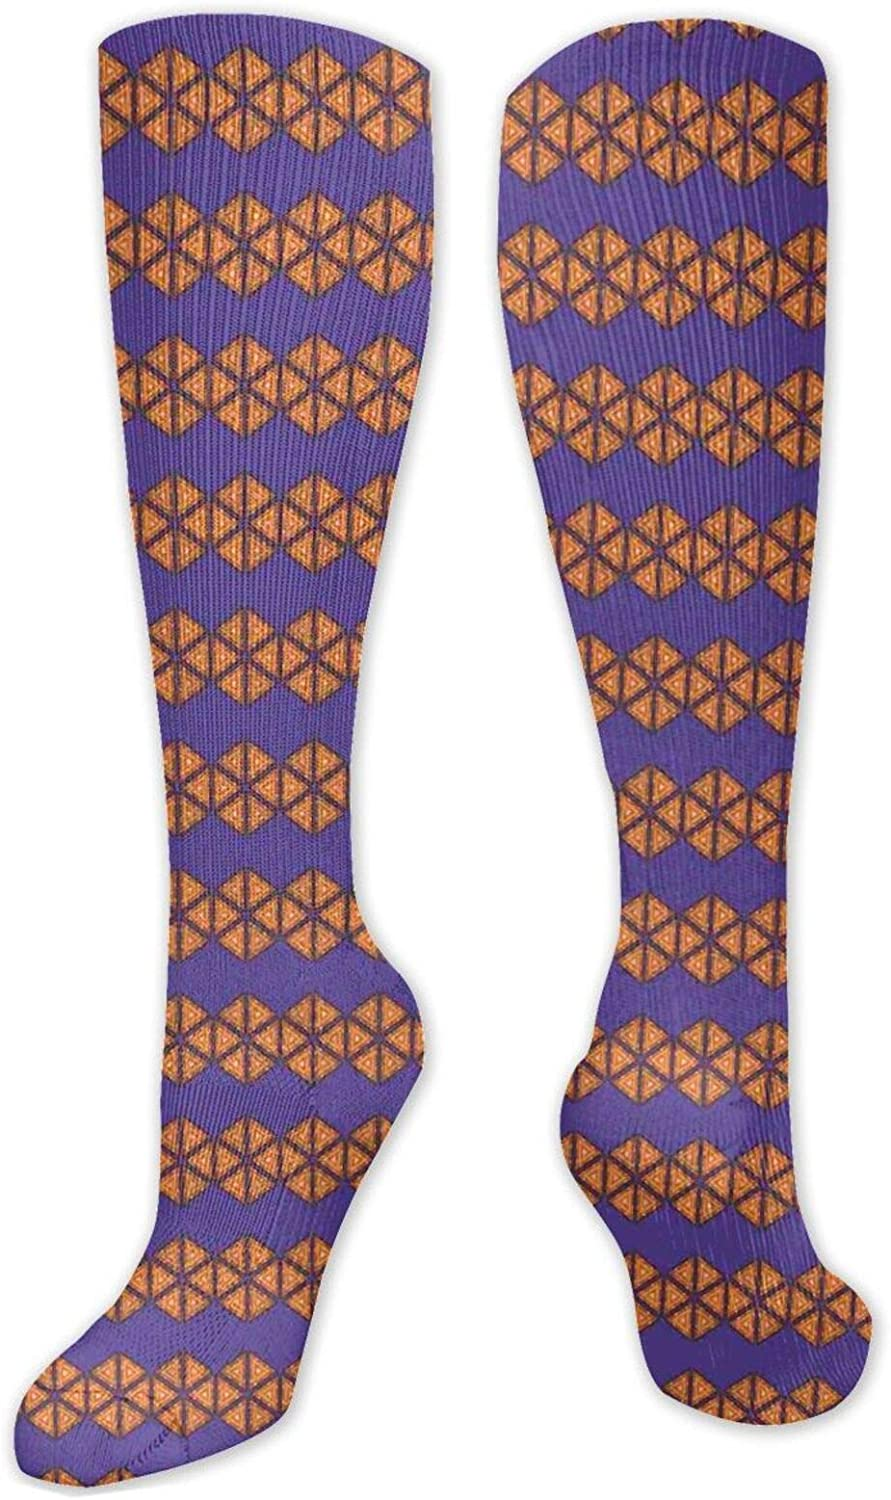 Compression Socks Max 78% OFF for Men Women Running Athletic In a popularity and